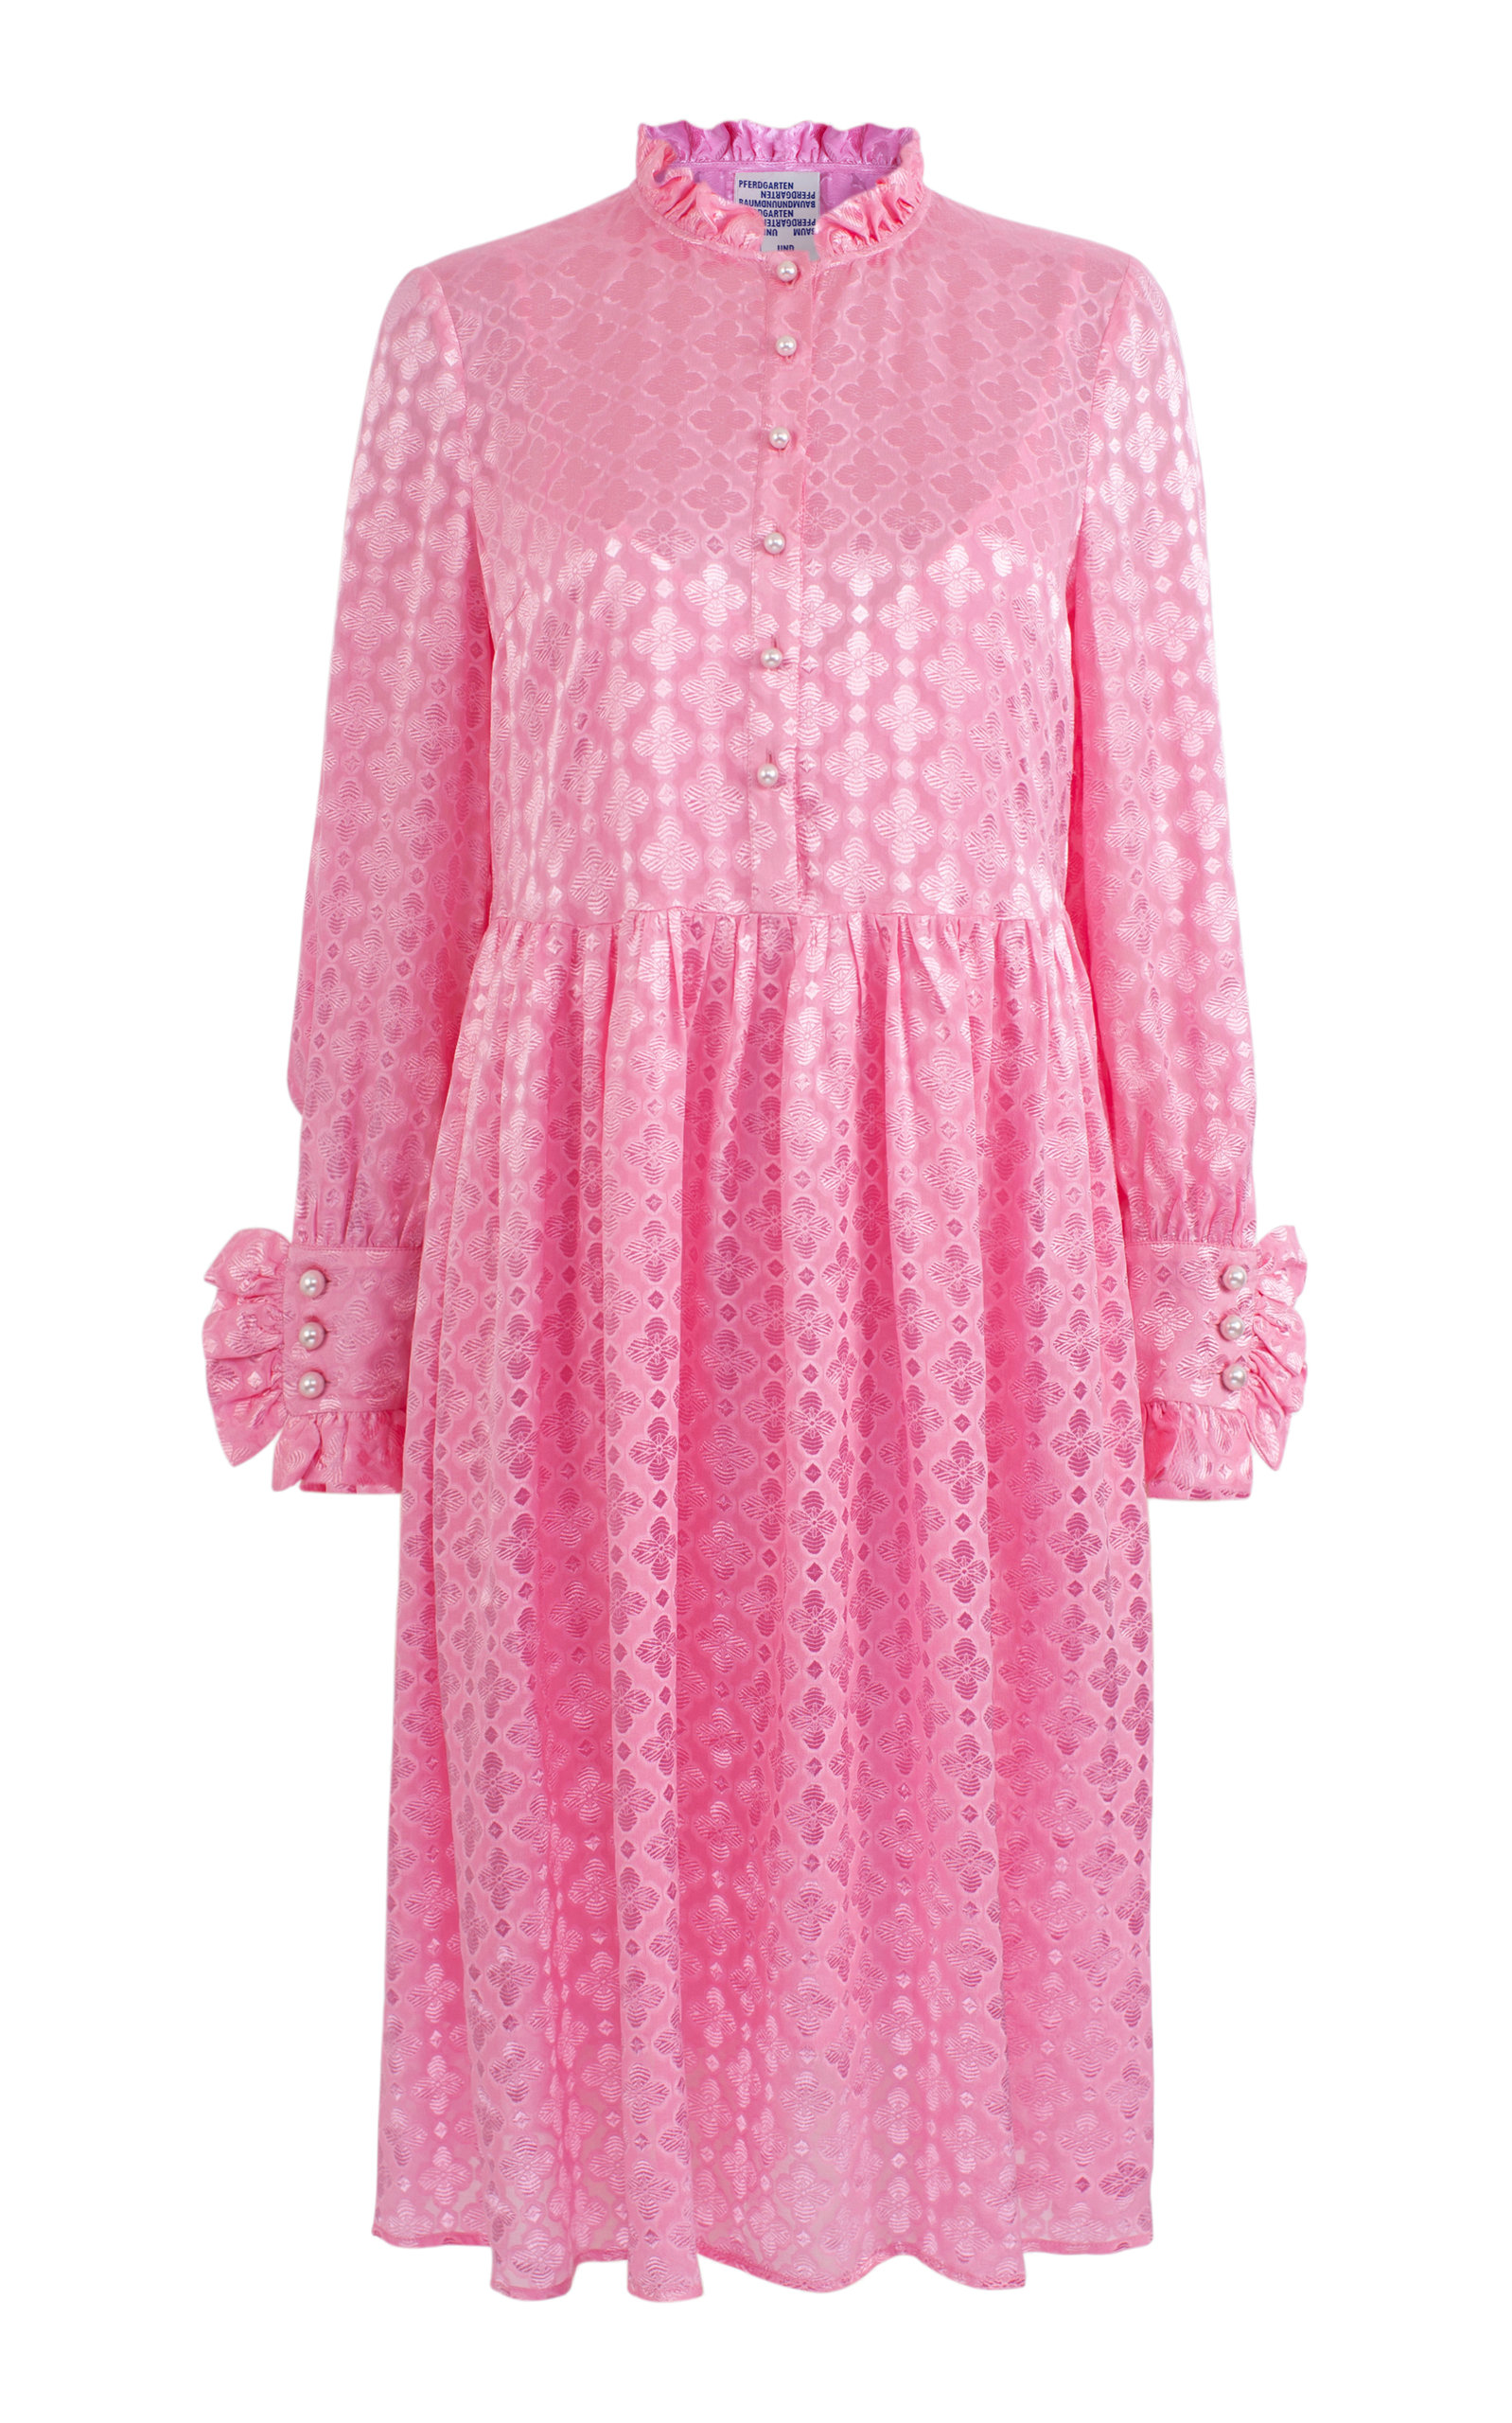 Baum By Knee Und Operandi Length Pferdgarten Pink Agacia Dress Moda nTYXPIxq